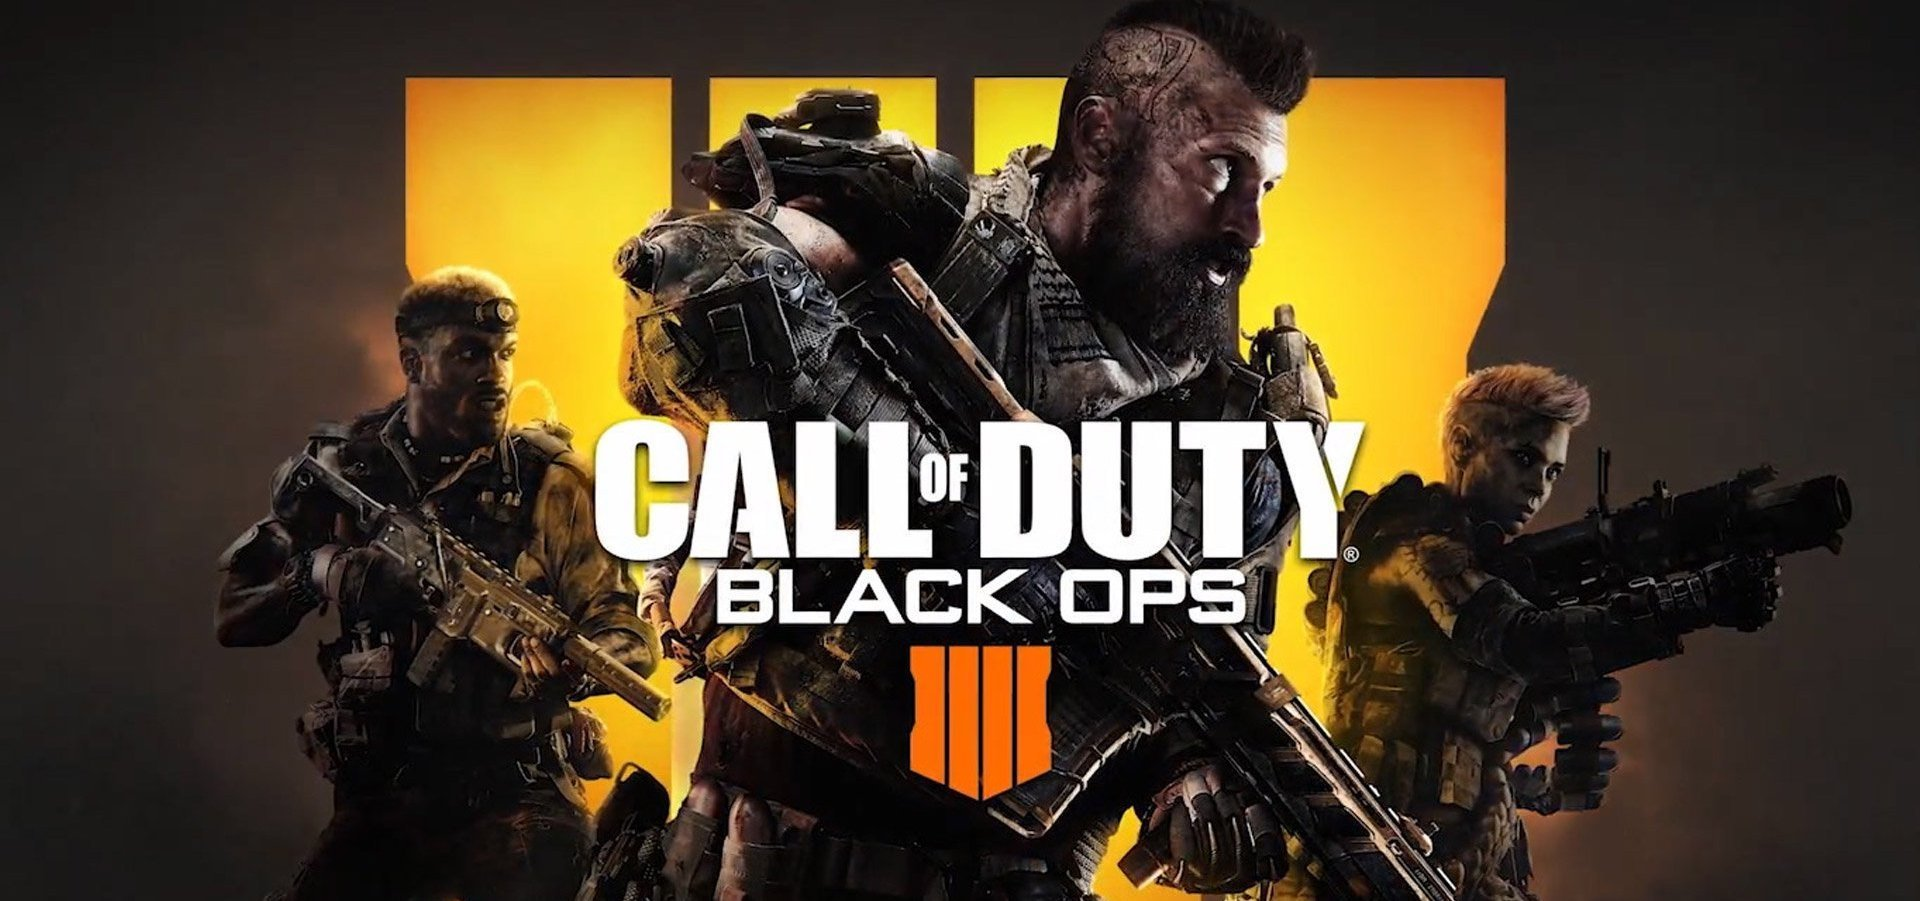 Today's Best Game Deals: Call of Duty Black Ops 4 $33, Mario + Rabbids from $20, more